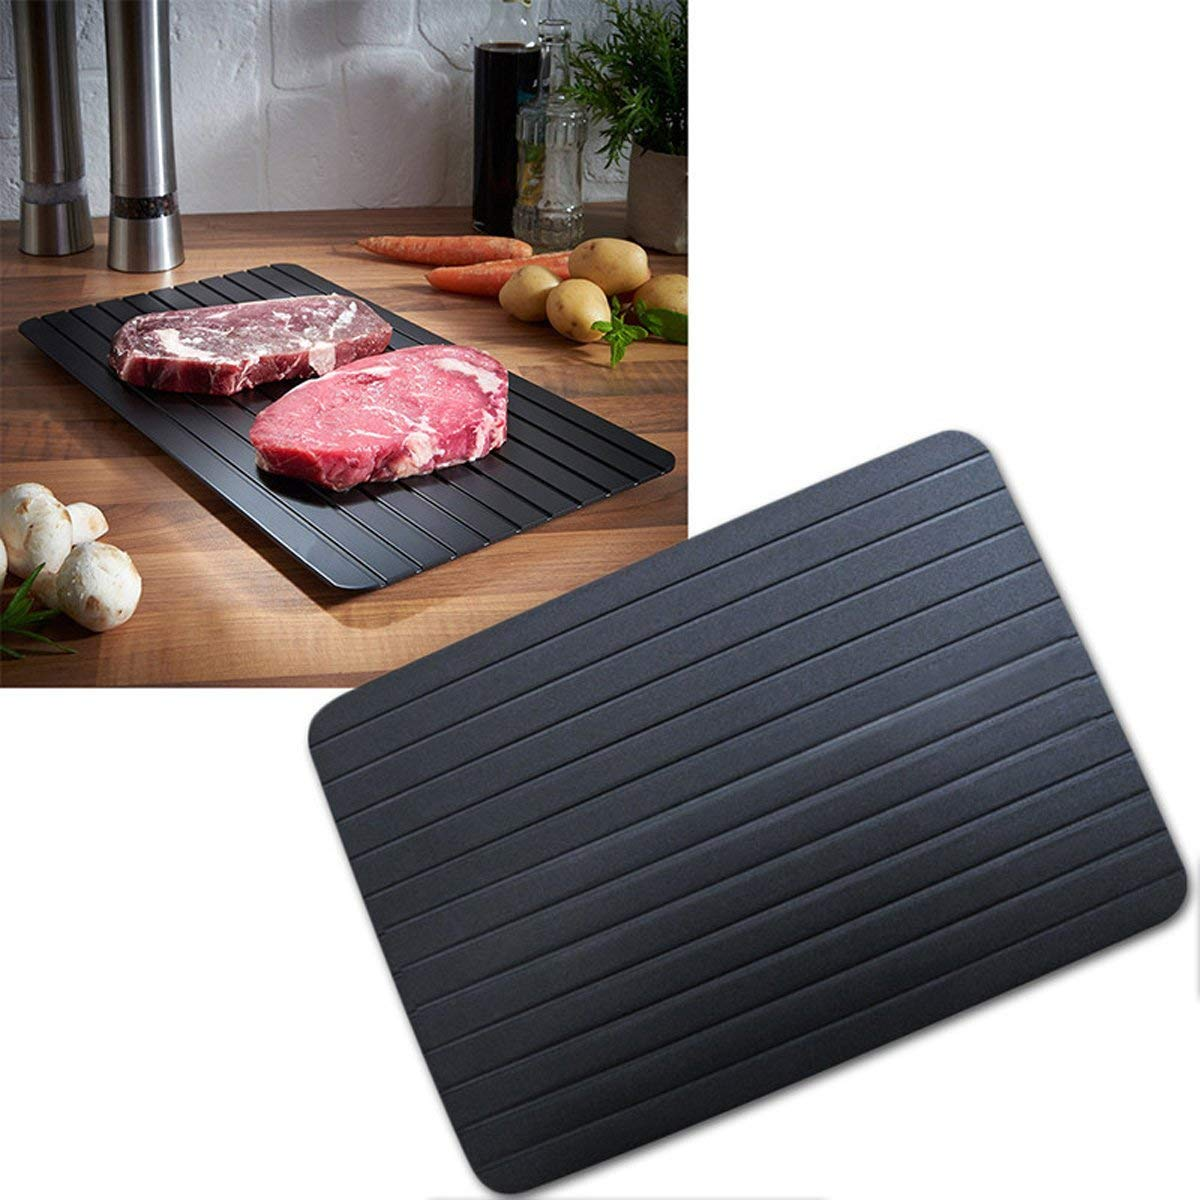 TECHSON Fast Defrosting Meat Tray, Quickly Safety Aluminum Thawing Plate for Frozen Meat Fish Food